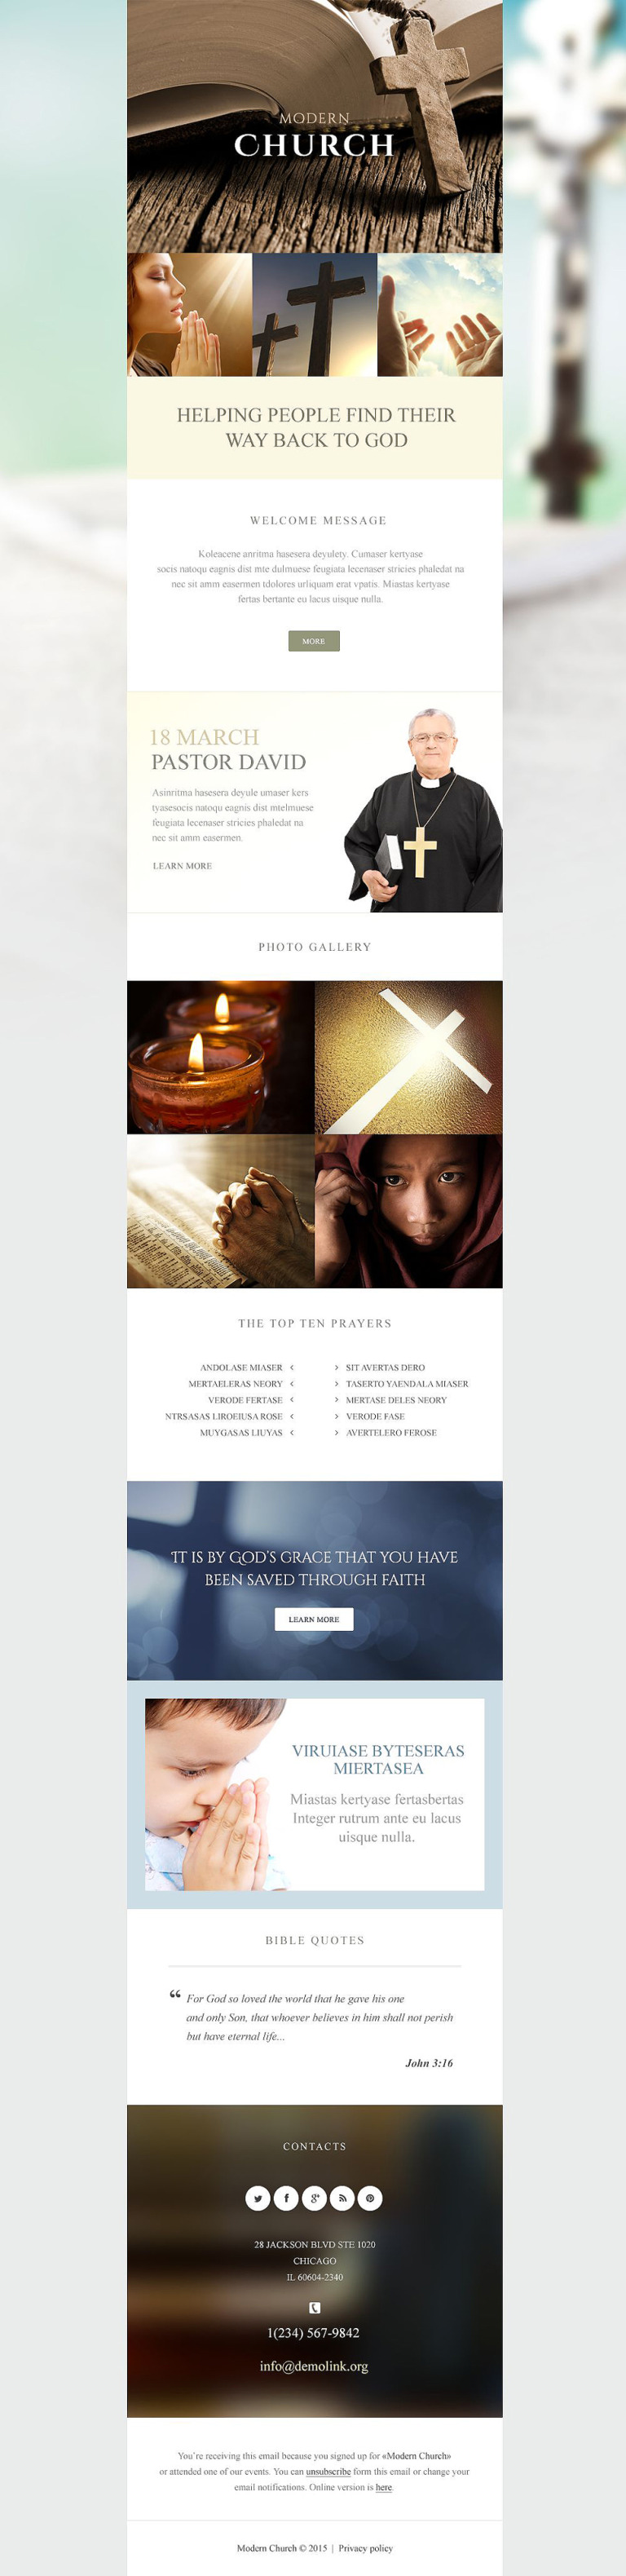 Religious Responsive Newsletter Template New Screenshots BIG